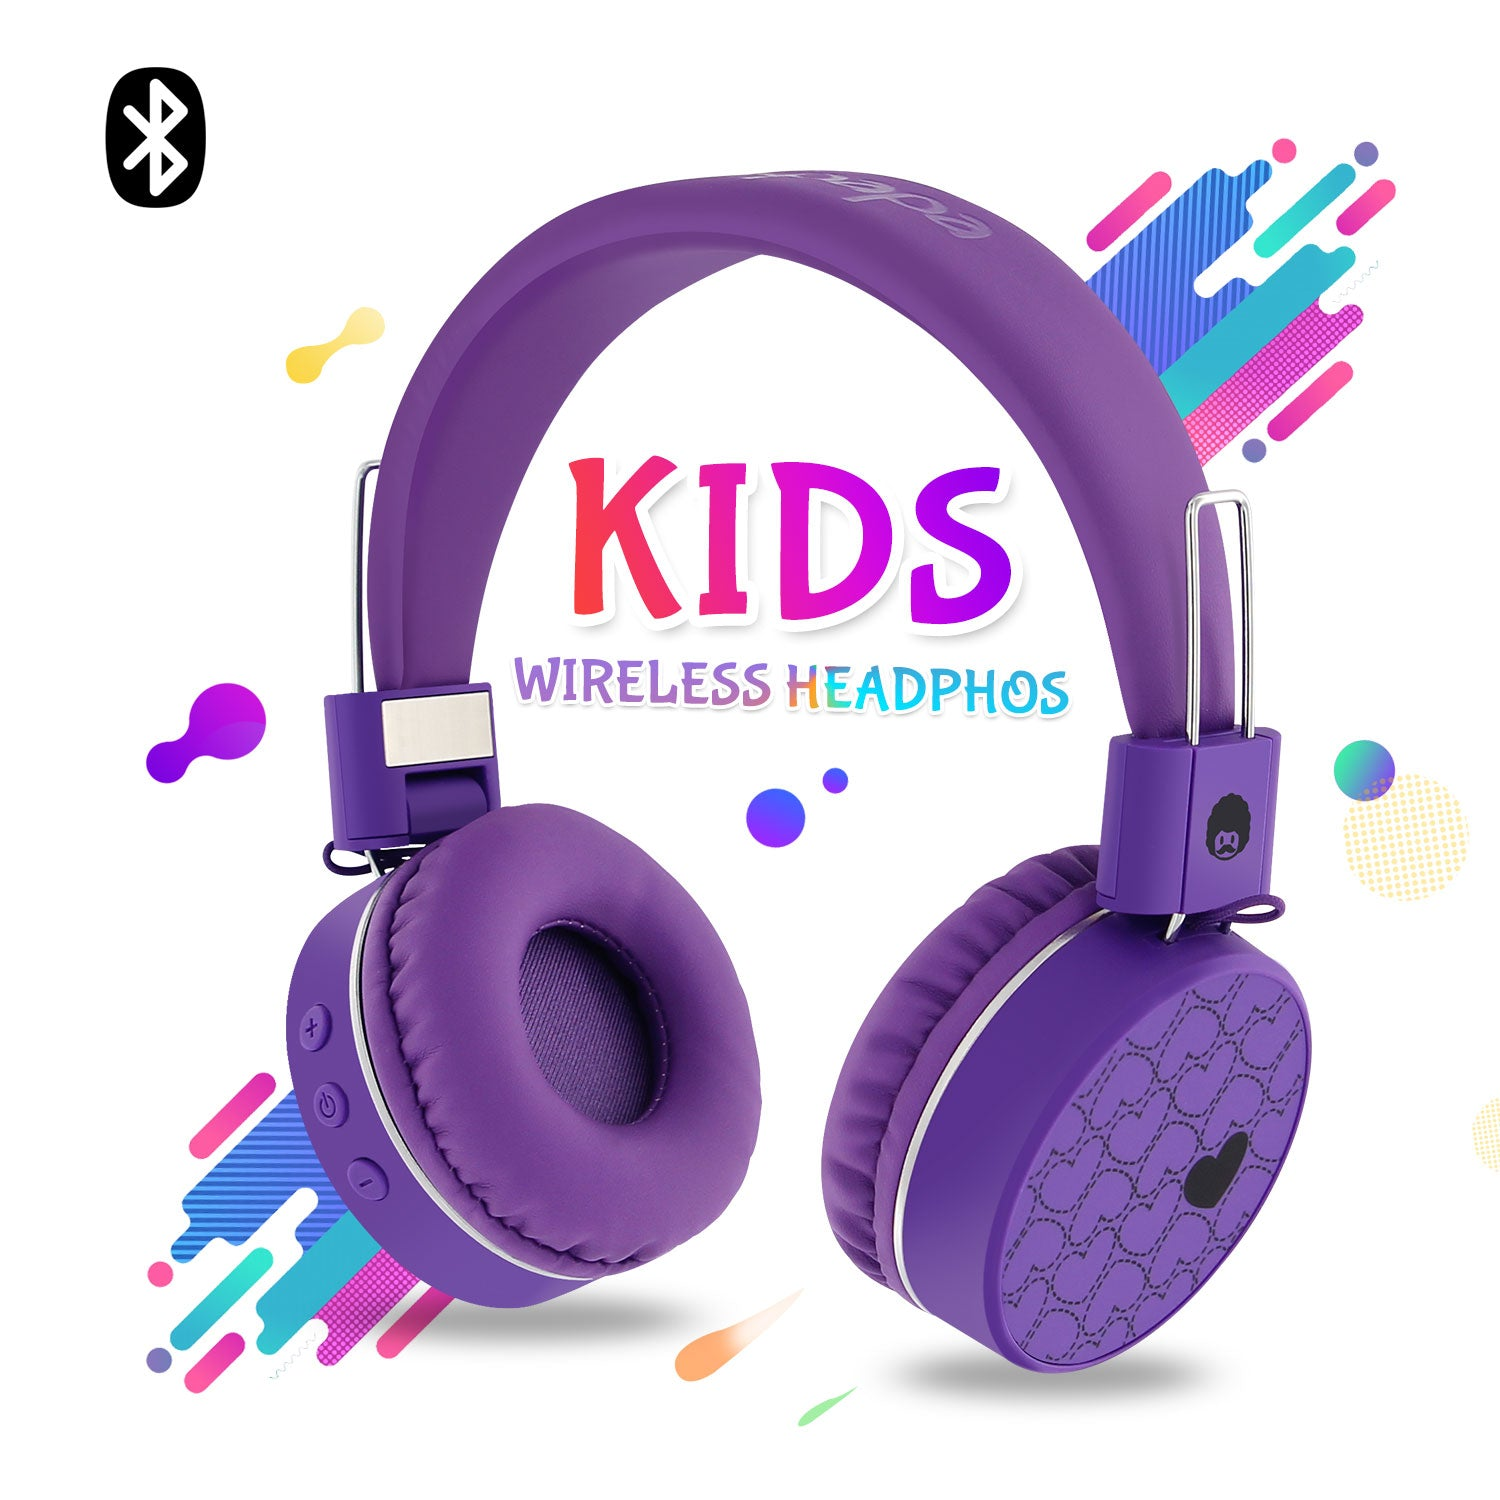 WKD80 Kids Wireless Bluetooth Foldable Stereo Headphones Purple